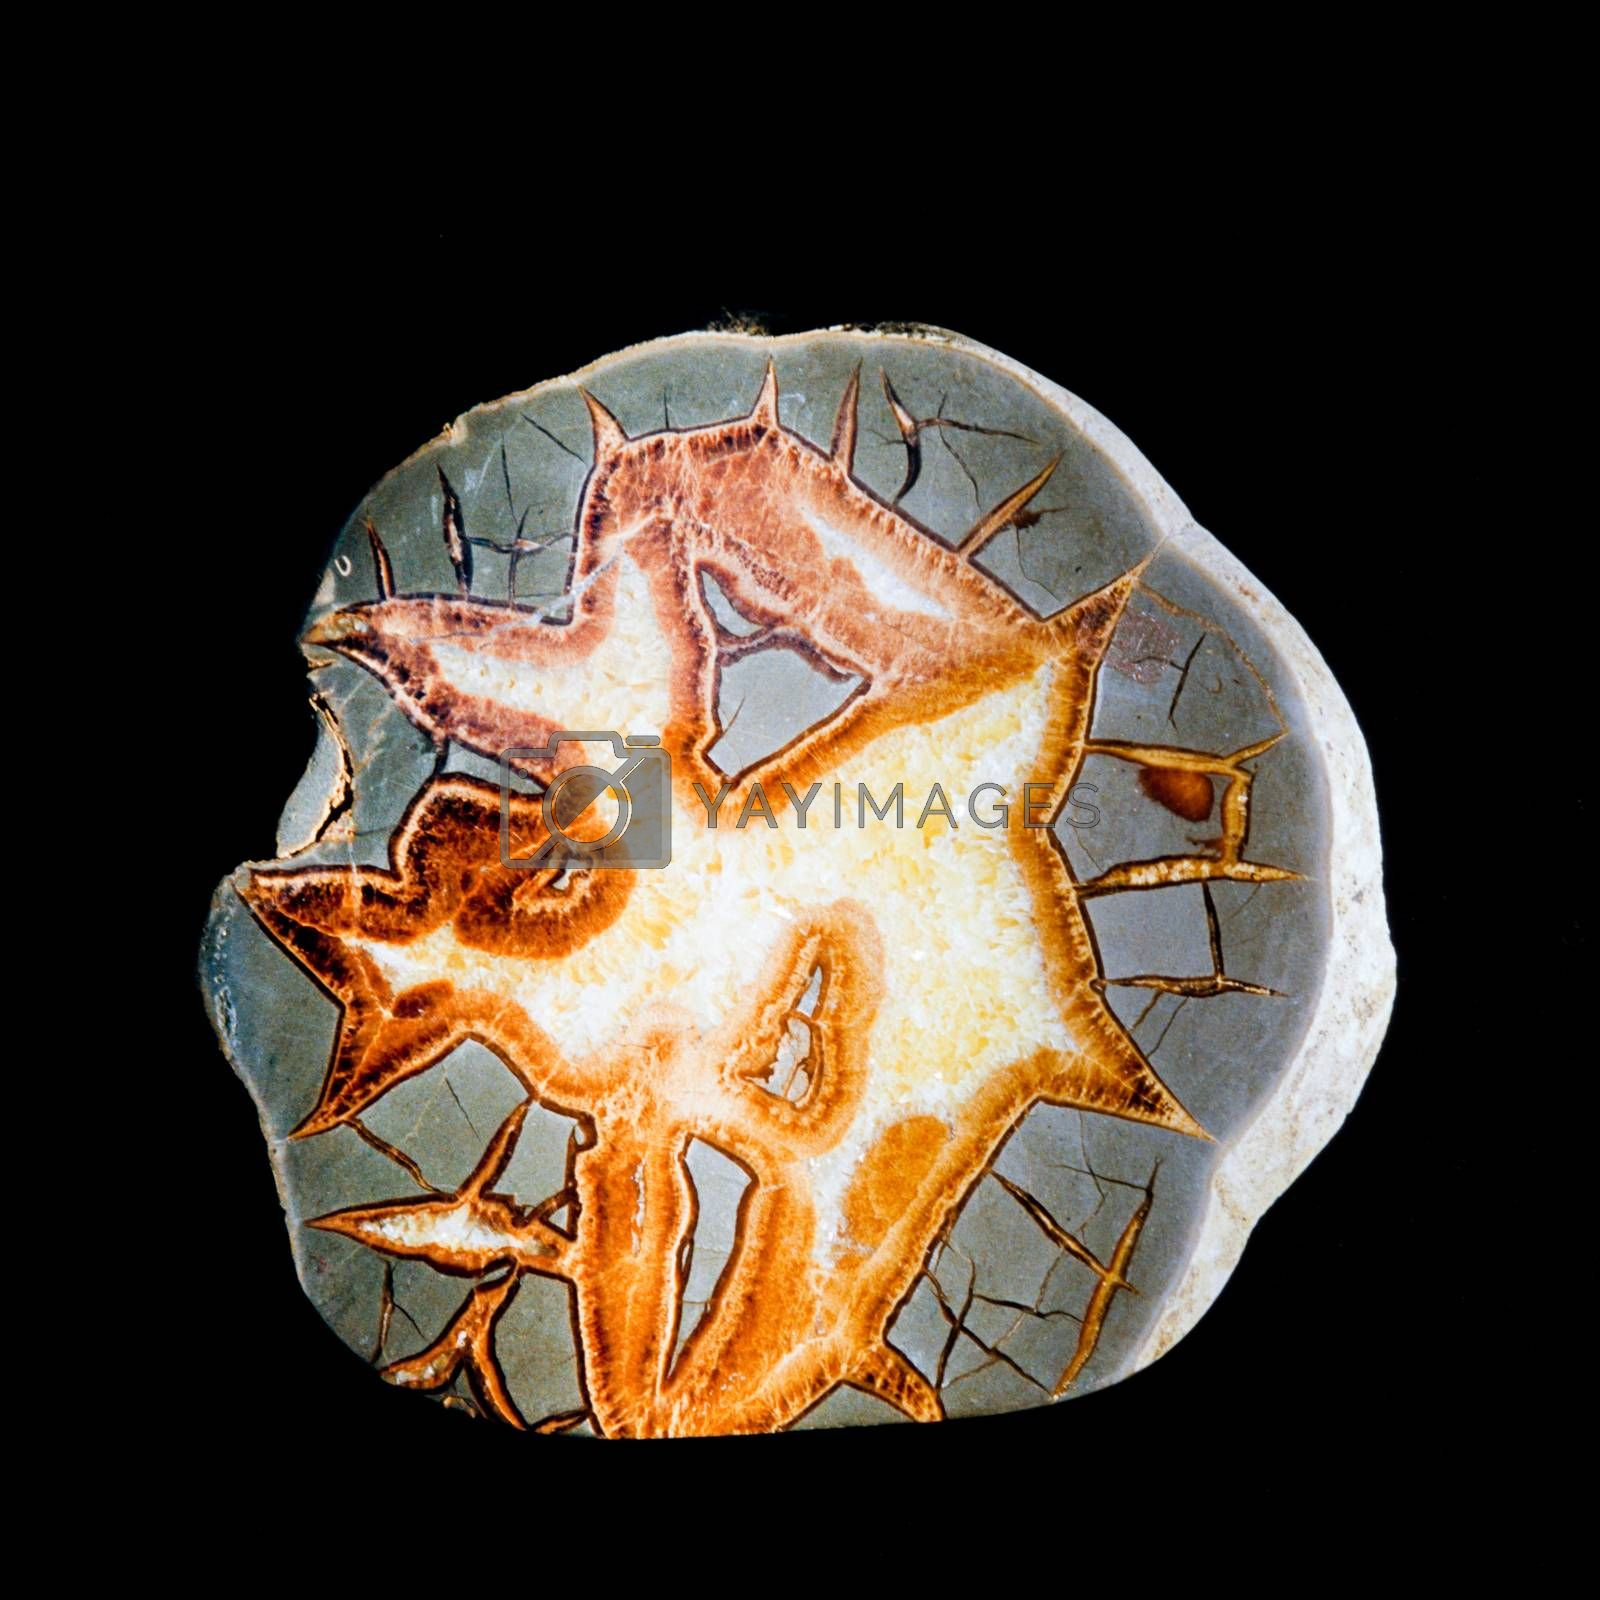 Septarian concretion nodule scalenohedral calcite by PiLens